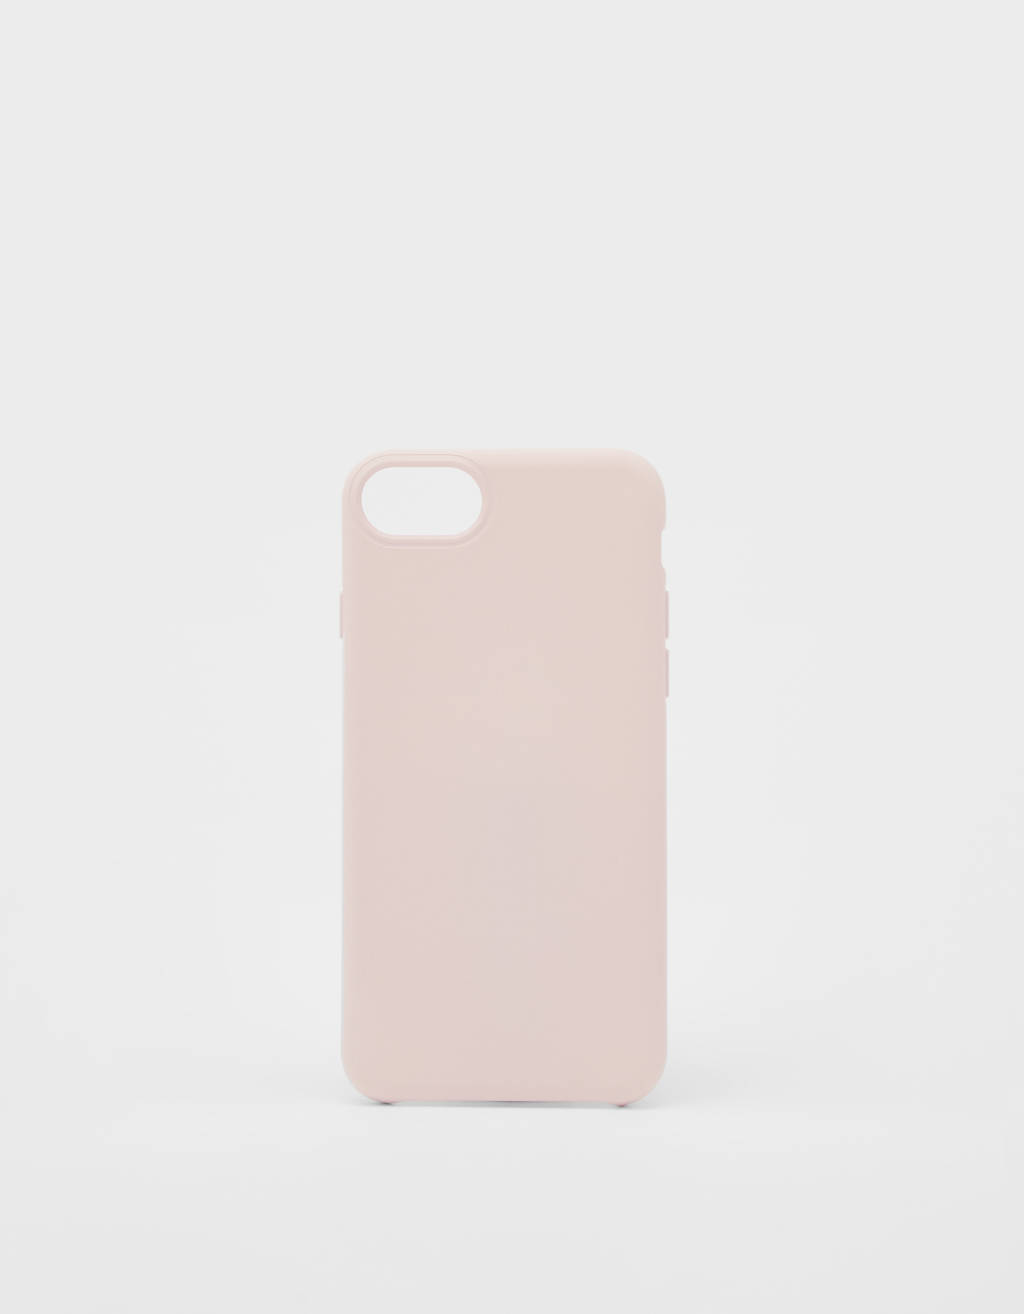 Plain iPhone 6 / 6S / 7 / 8 case